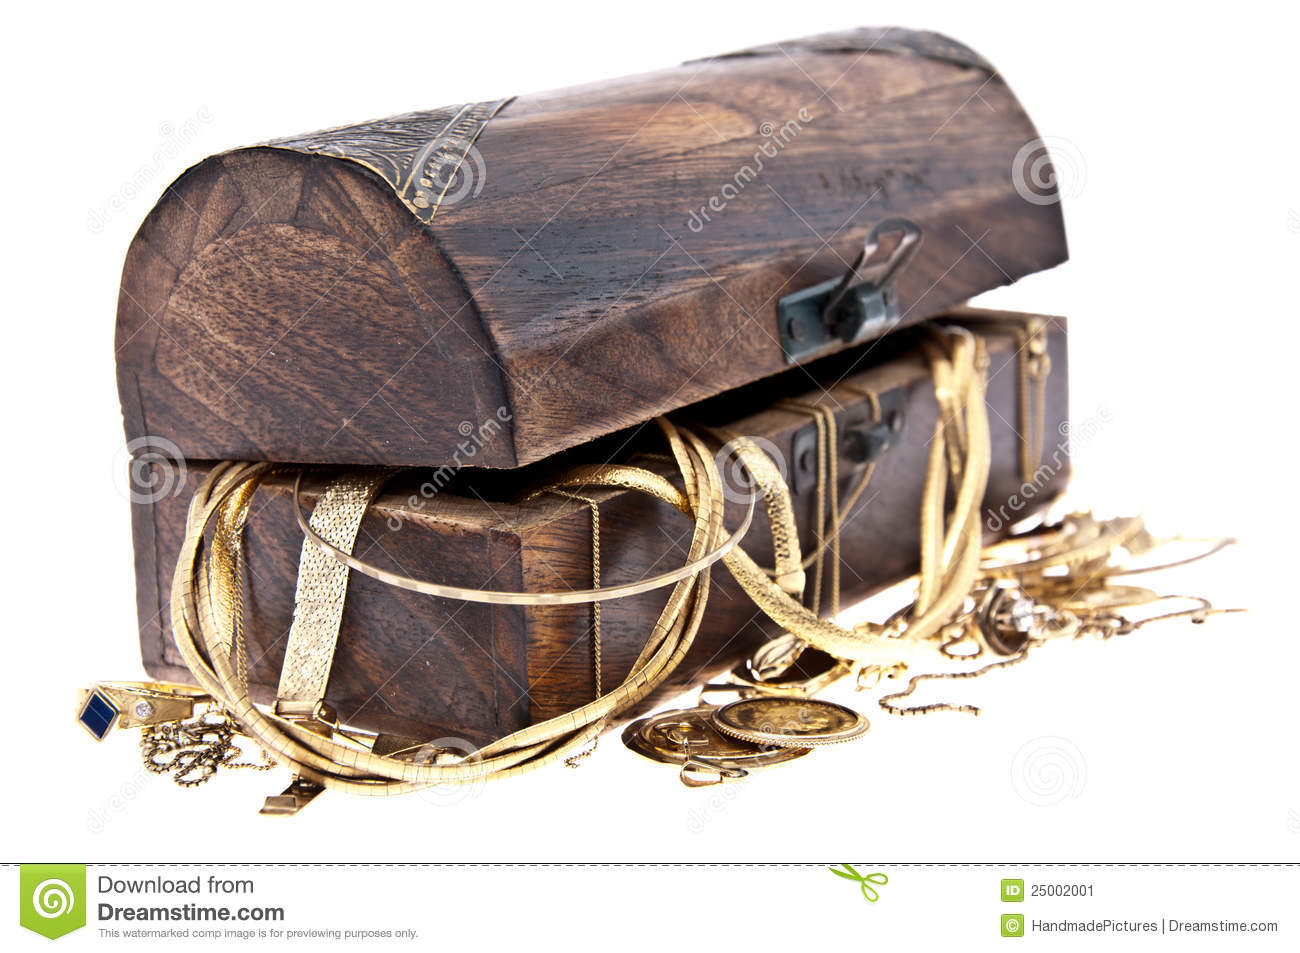 Treasure box with old jewelry stock image image 25002001 for What to do with old mailbox